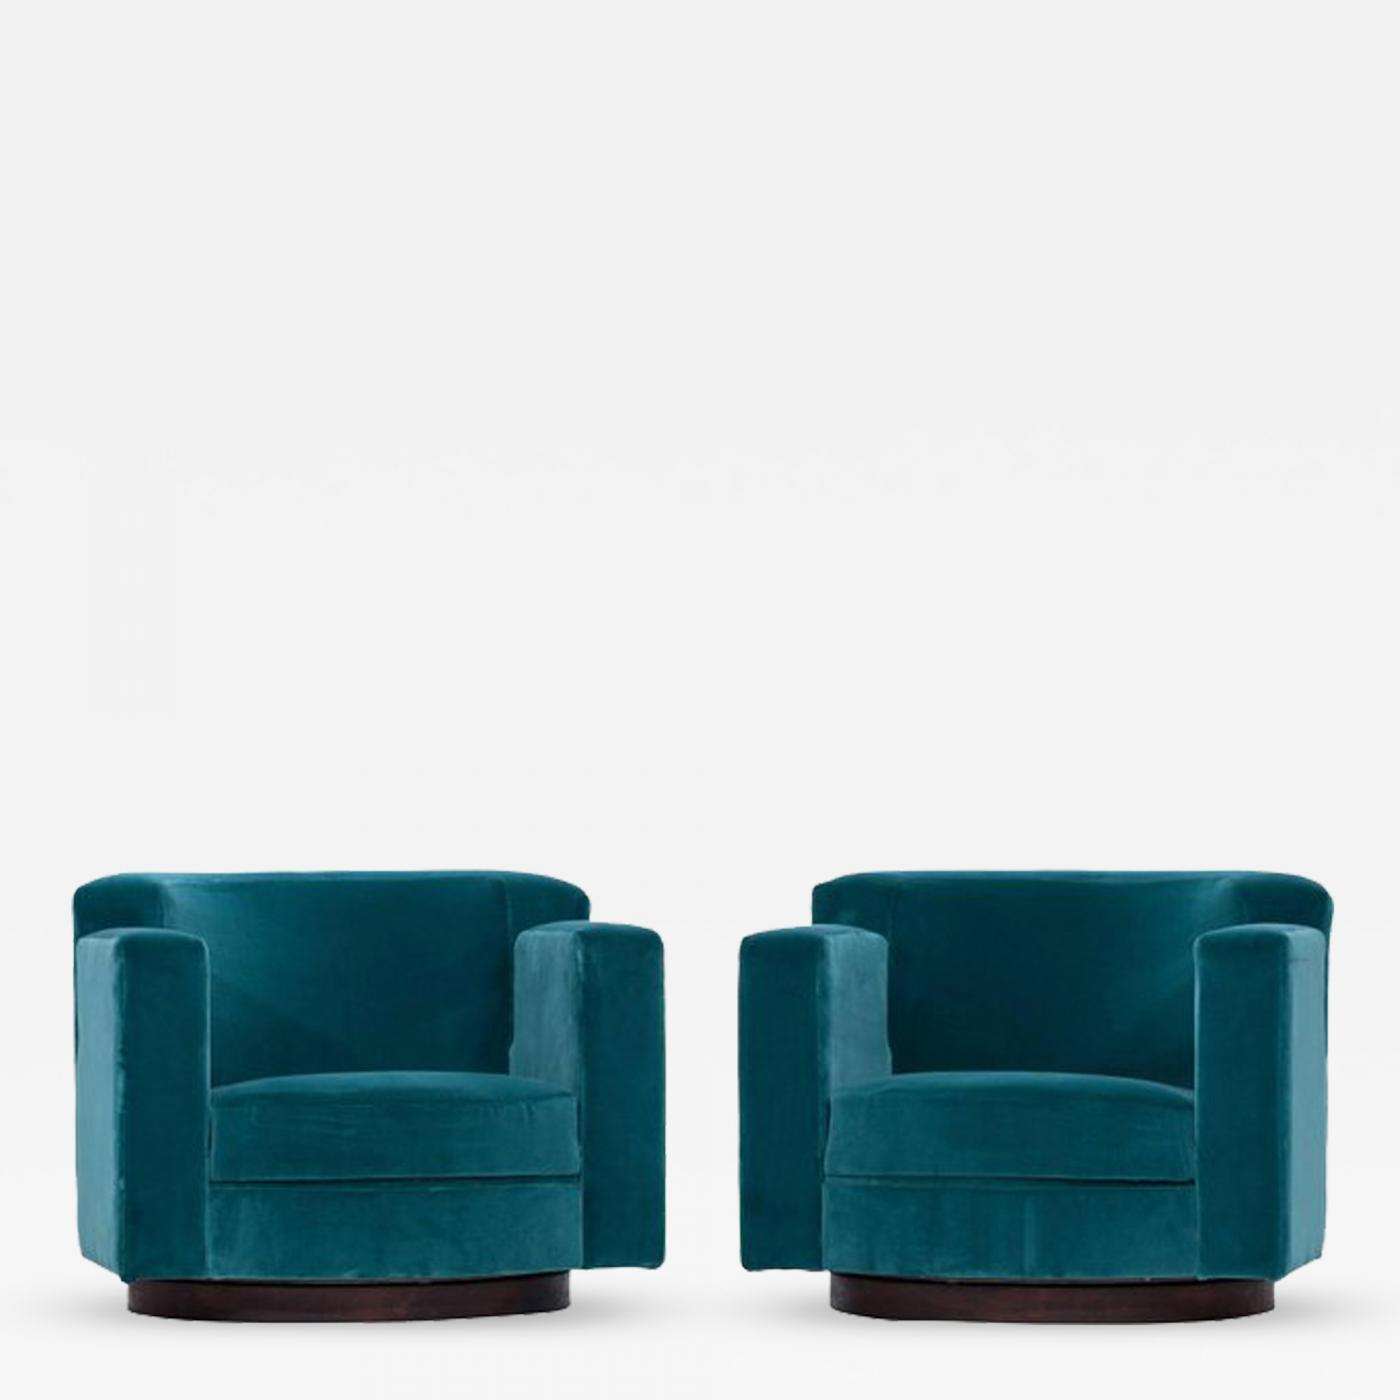 Wondrous Luciano Frigerio Pair Of Luciano Frigerio Blue Velvet Lounge Swivel Chairs Unemploymentrelief Wooden Chair Designs For Living Room Unemploymentrelieforg